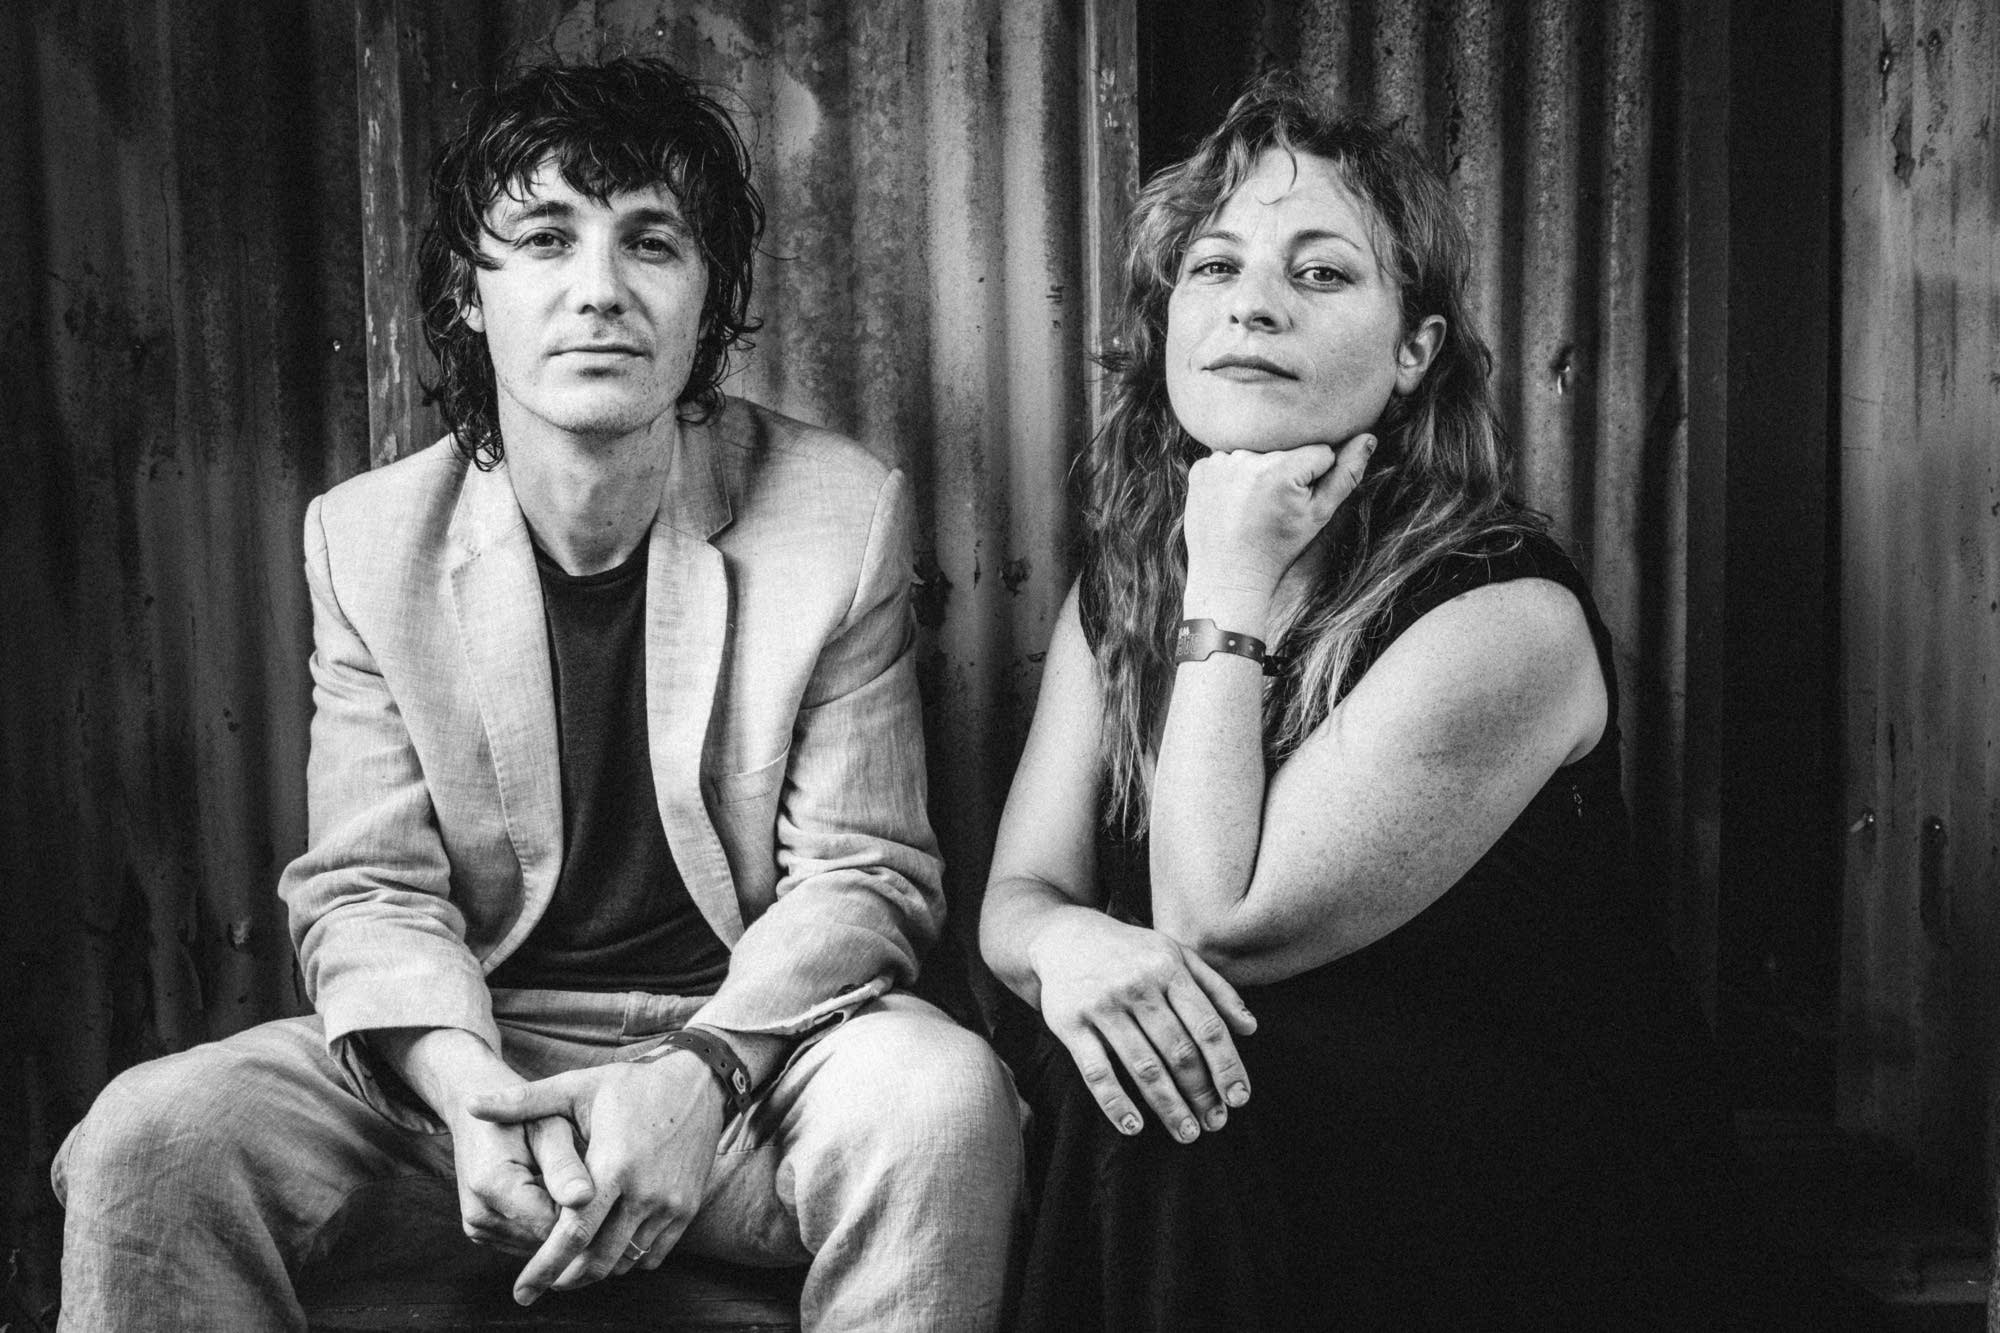 Shovels and Rope